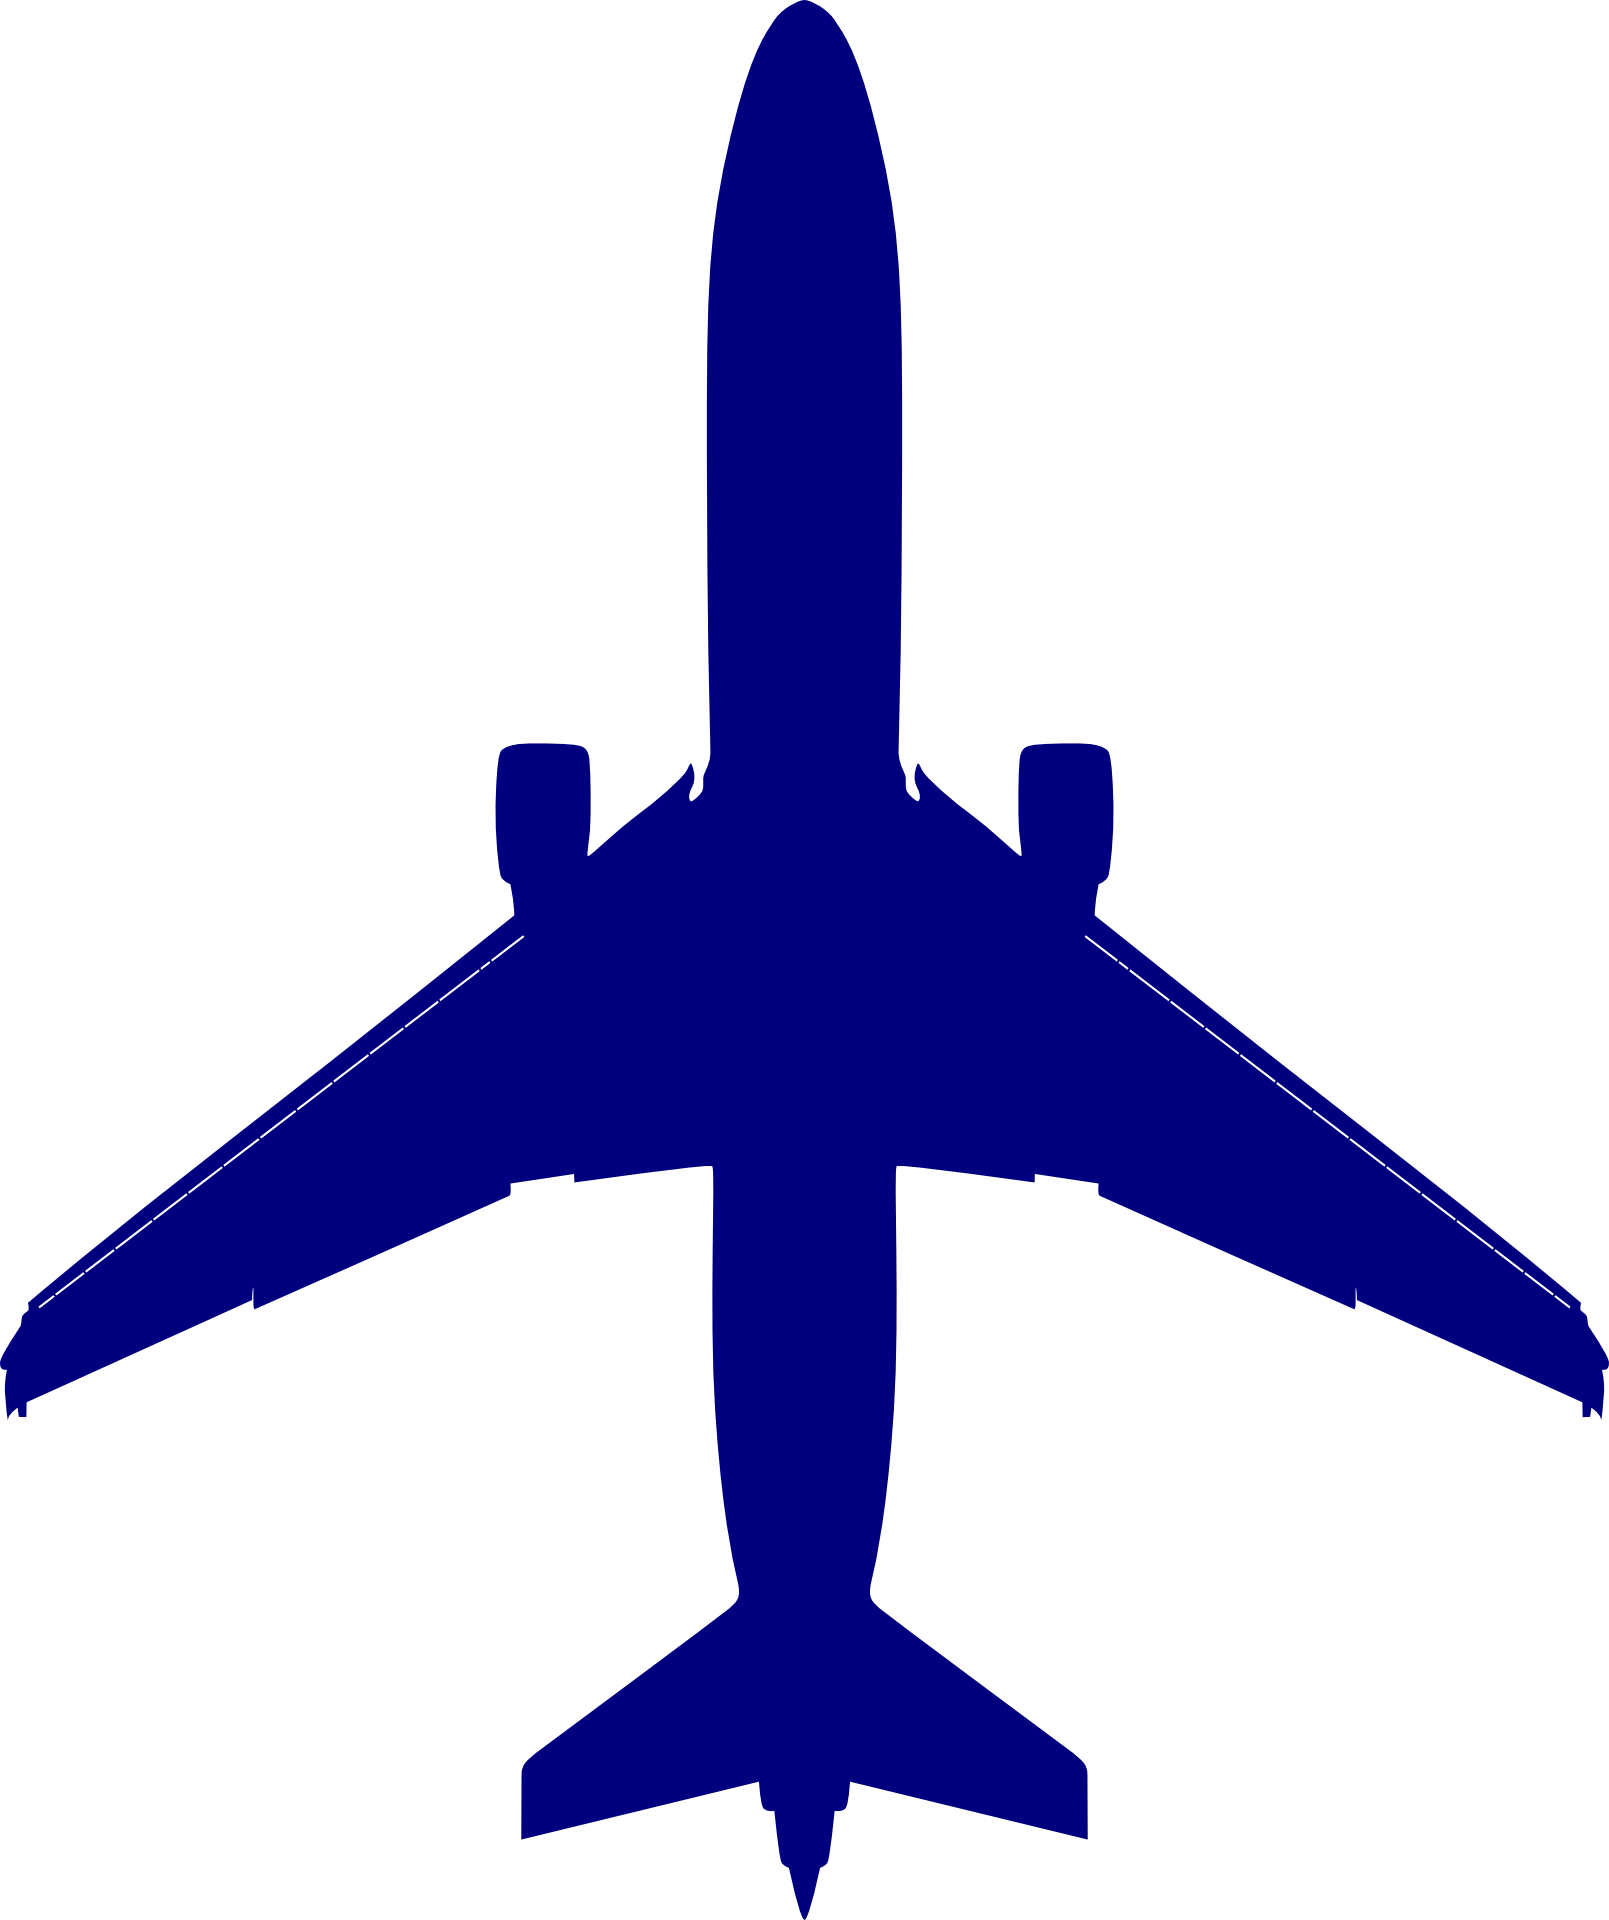 Blue airplane. Clipart free image